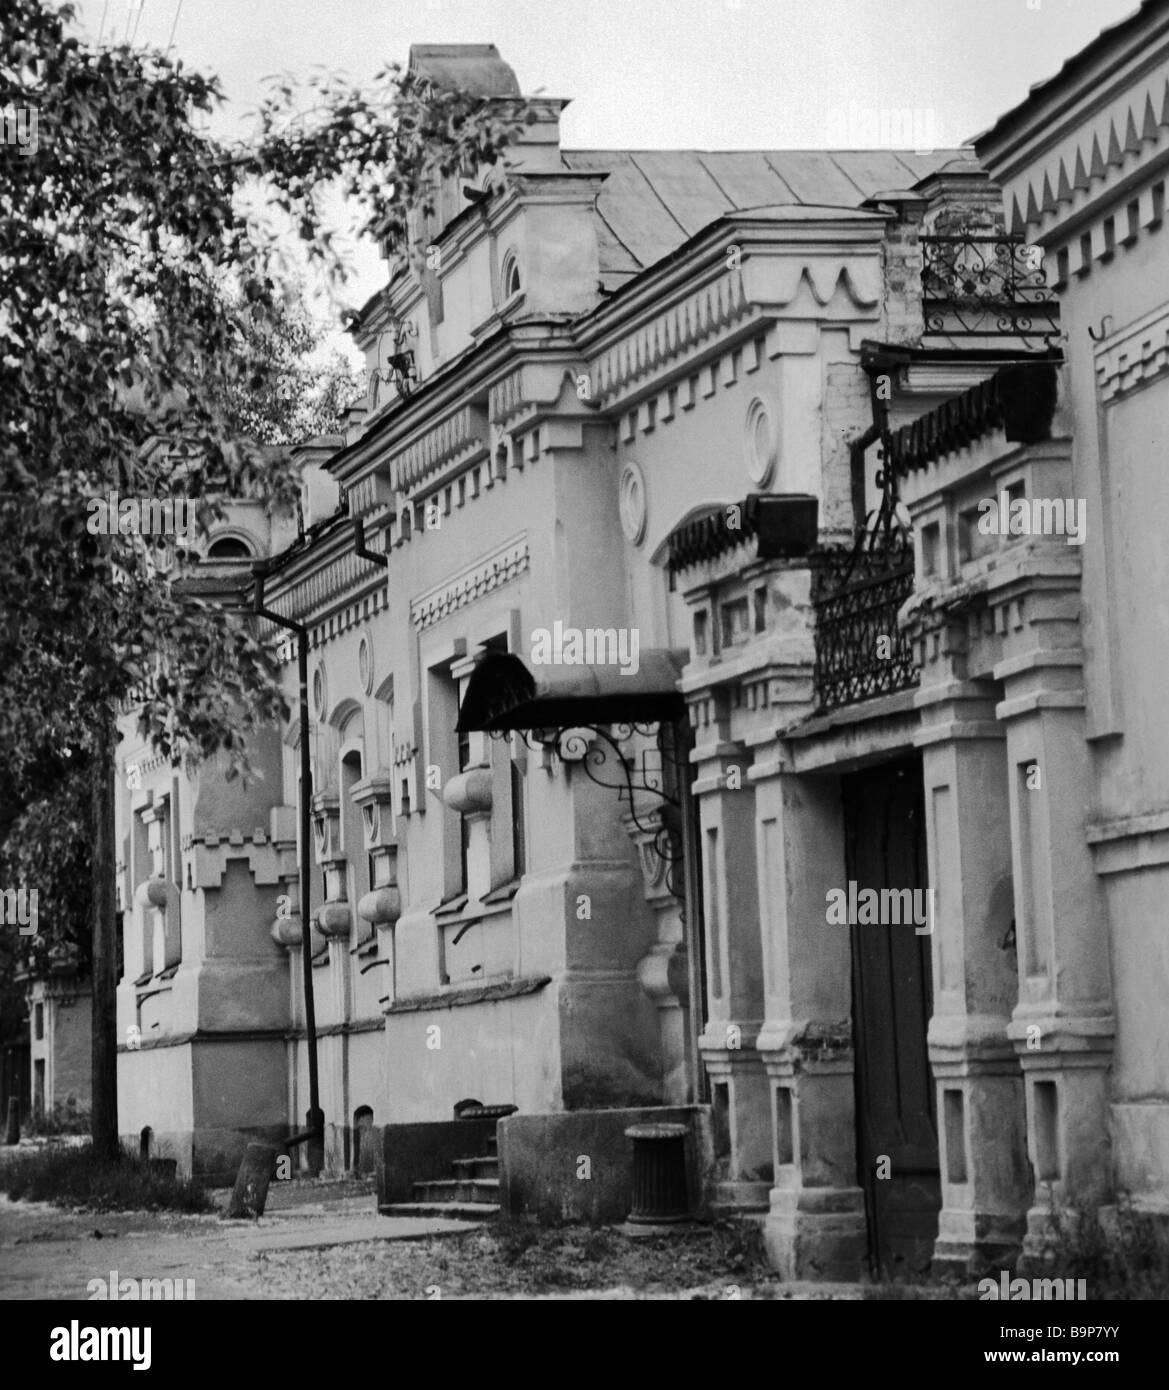 The house where Emperor Nicholas II and his family spent their last days - Stock Image